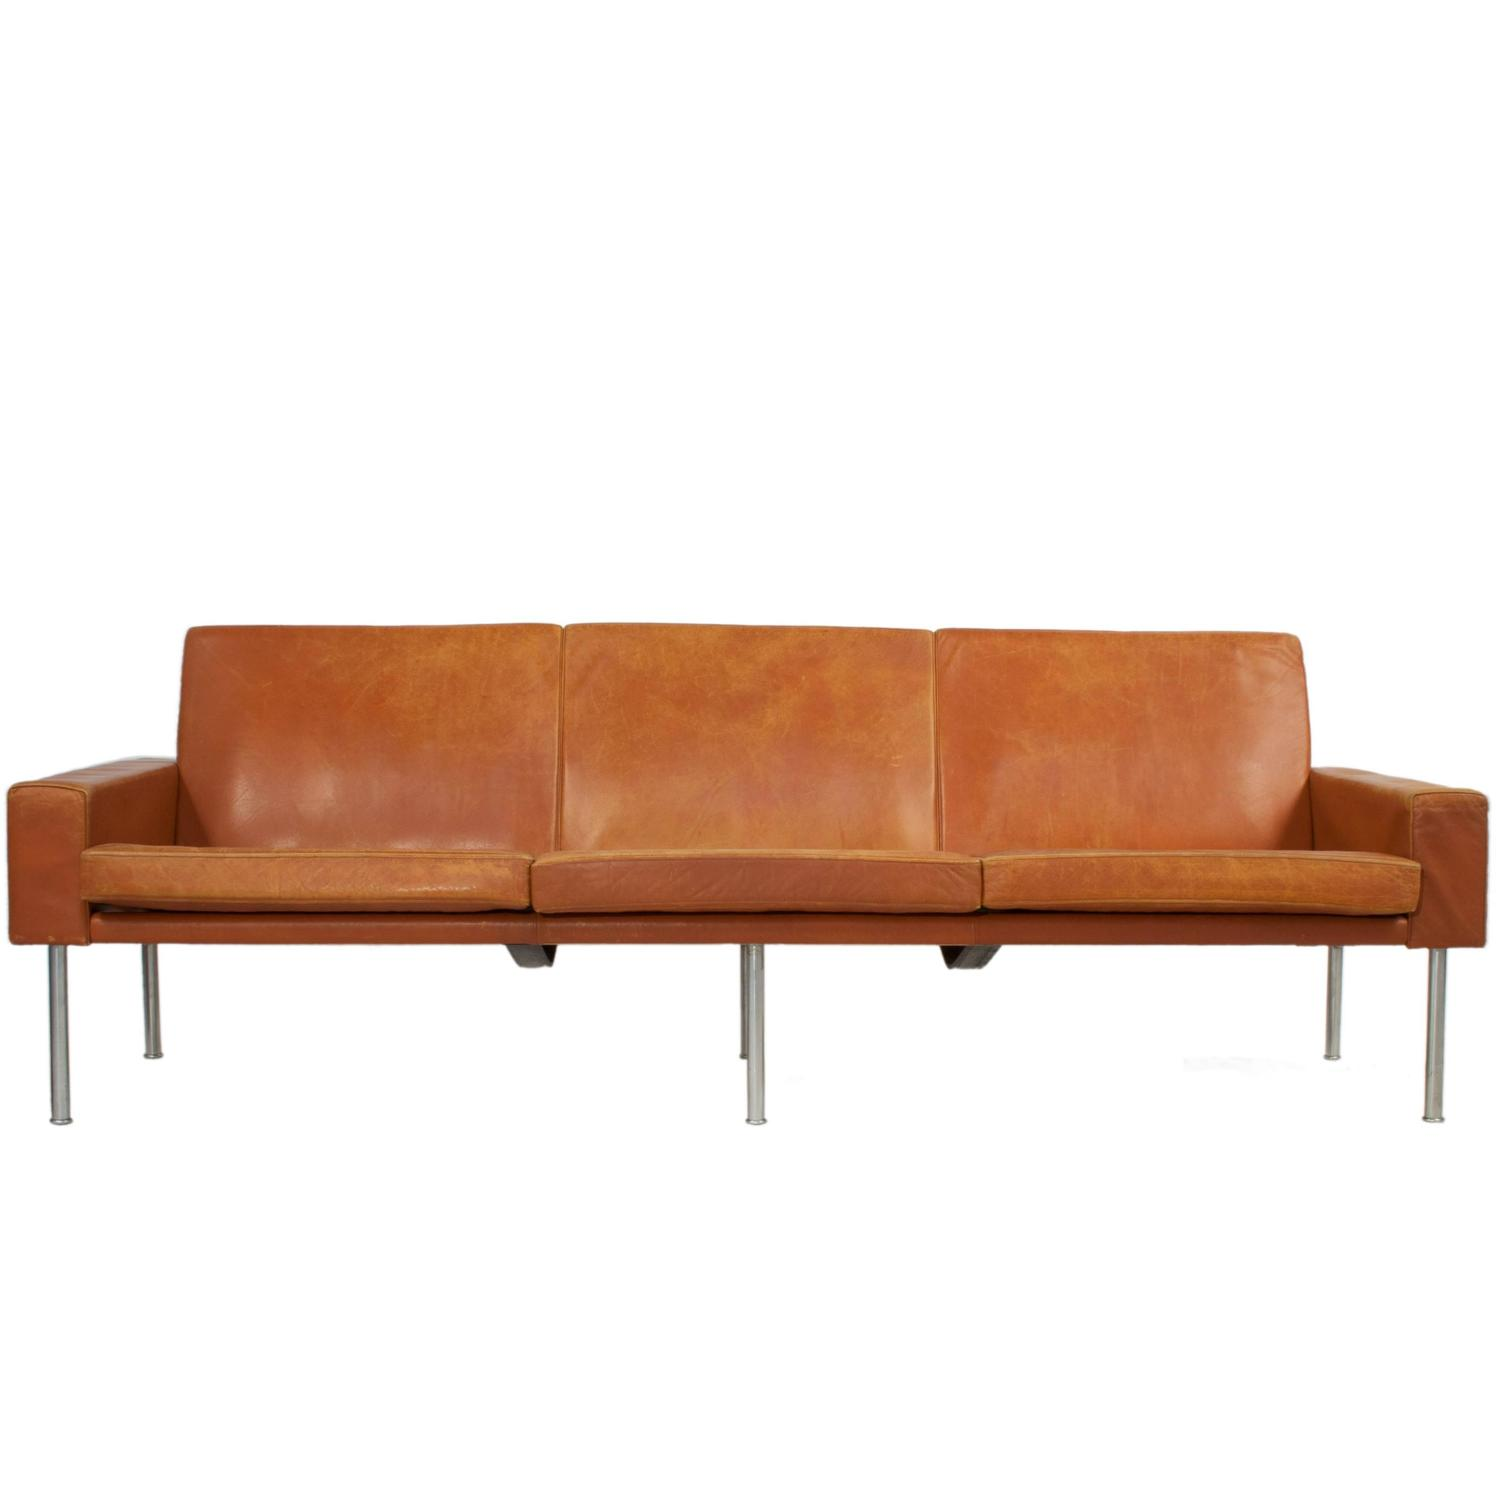 leather sofa by hans wegner at 1stdibs. Black Bedroom Furniture Sets. Home Design Ideas